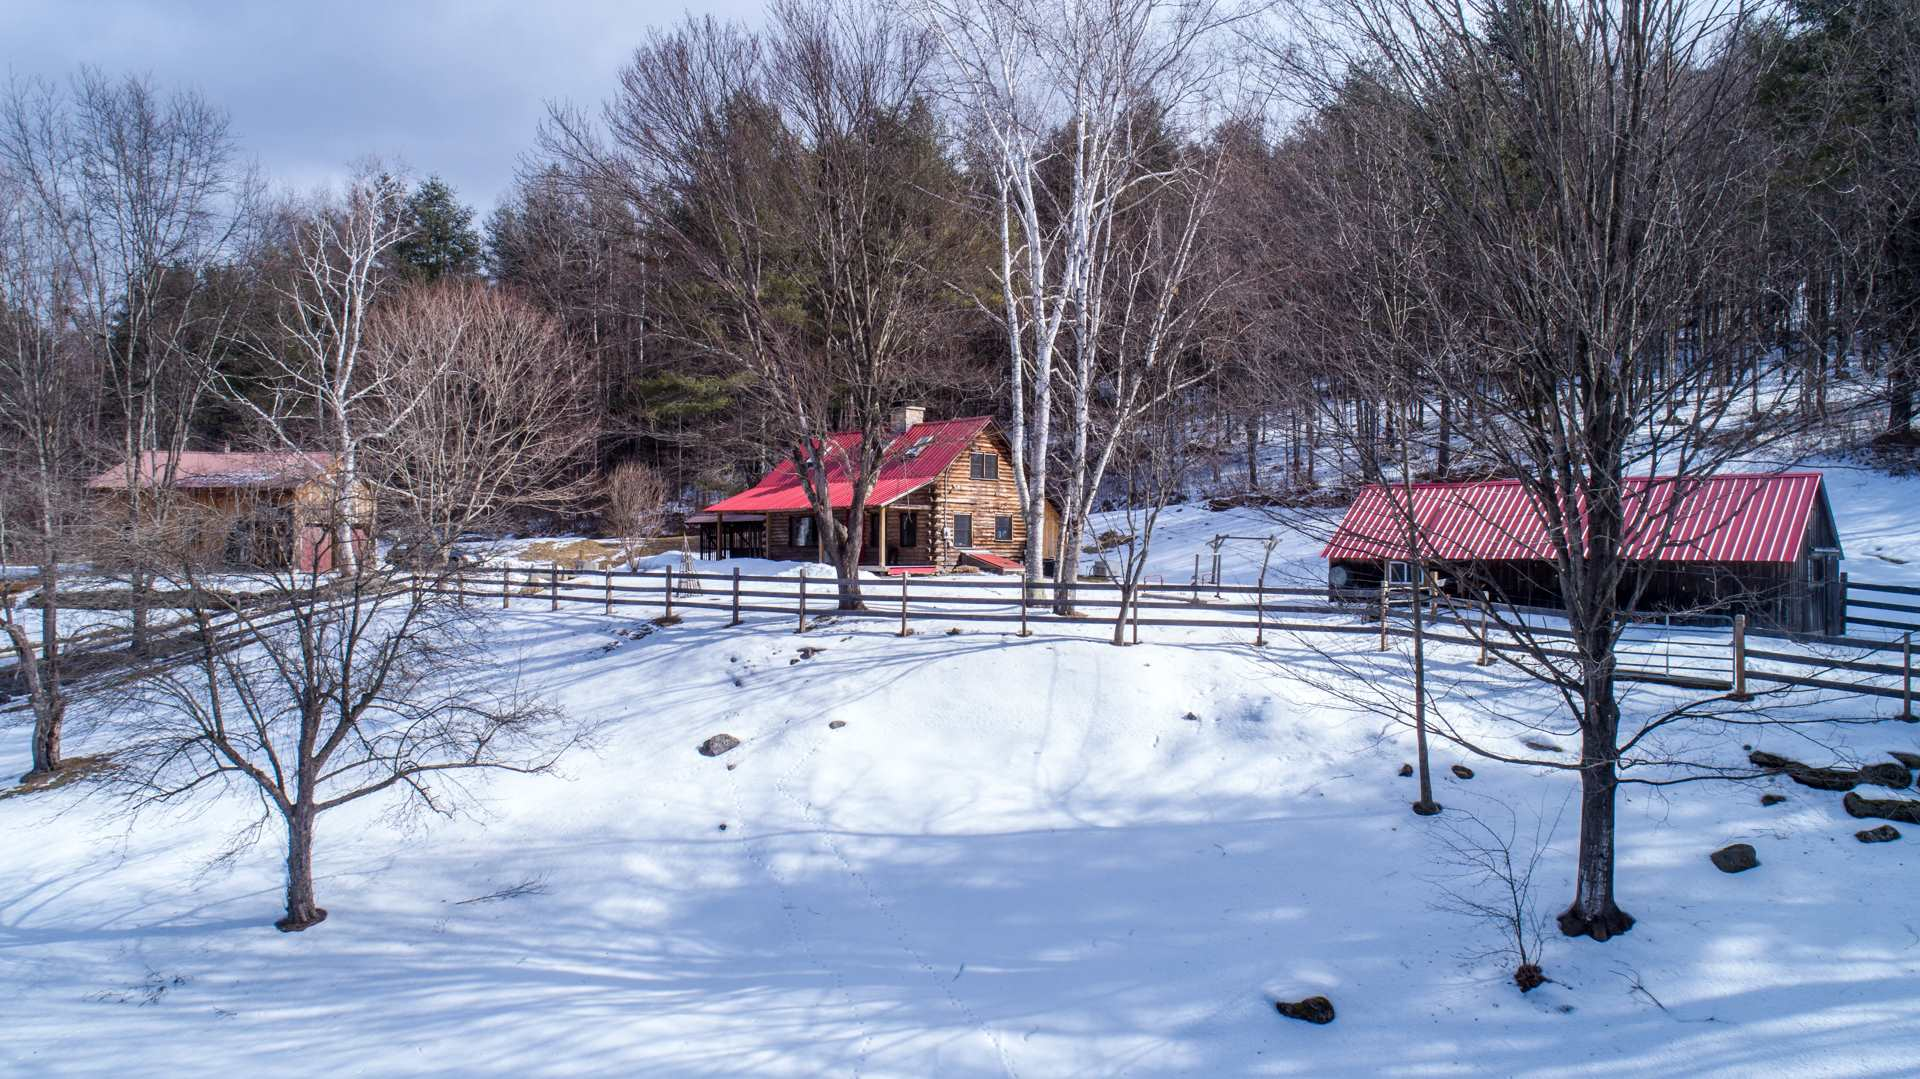 Wow! Renovations throughout this very special property. Set on 6.1 beautiful acres: two stall horse barn with potting shed. Add the seperate two car garage with office, huge hay loft along with renovated log cabin and this property is perfect primary or second home. When you walk into this charming log cabin you can feel the stylish taste of the current owner. Energy efficient with; Vermont casting wood stove to warm the whole house, forced hot air heat and central air conditioning this home has it all. Three bedroom septic system, whole house generator, and fenced pasture for your horse. Located on good gravel road network, easy hack to federal land well maintained trail system. House is just a 23 minute ride up Route 106 to the GMHA (Green Mountain Horse Association) Newly blacktopped driveway makes this oasis your next home.